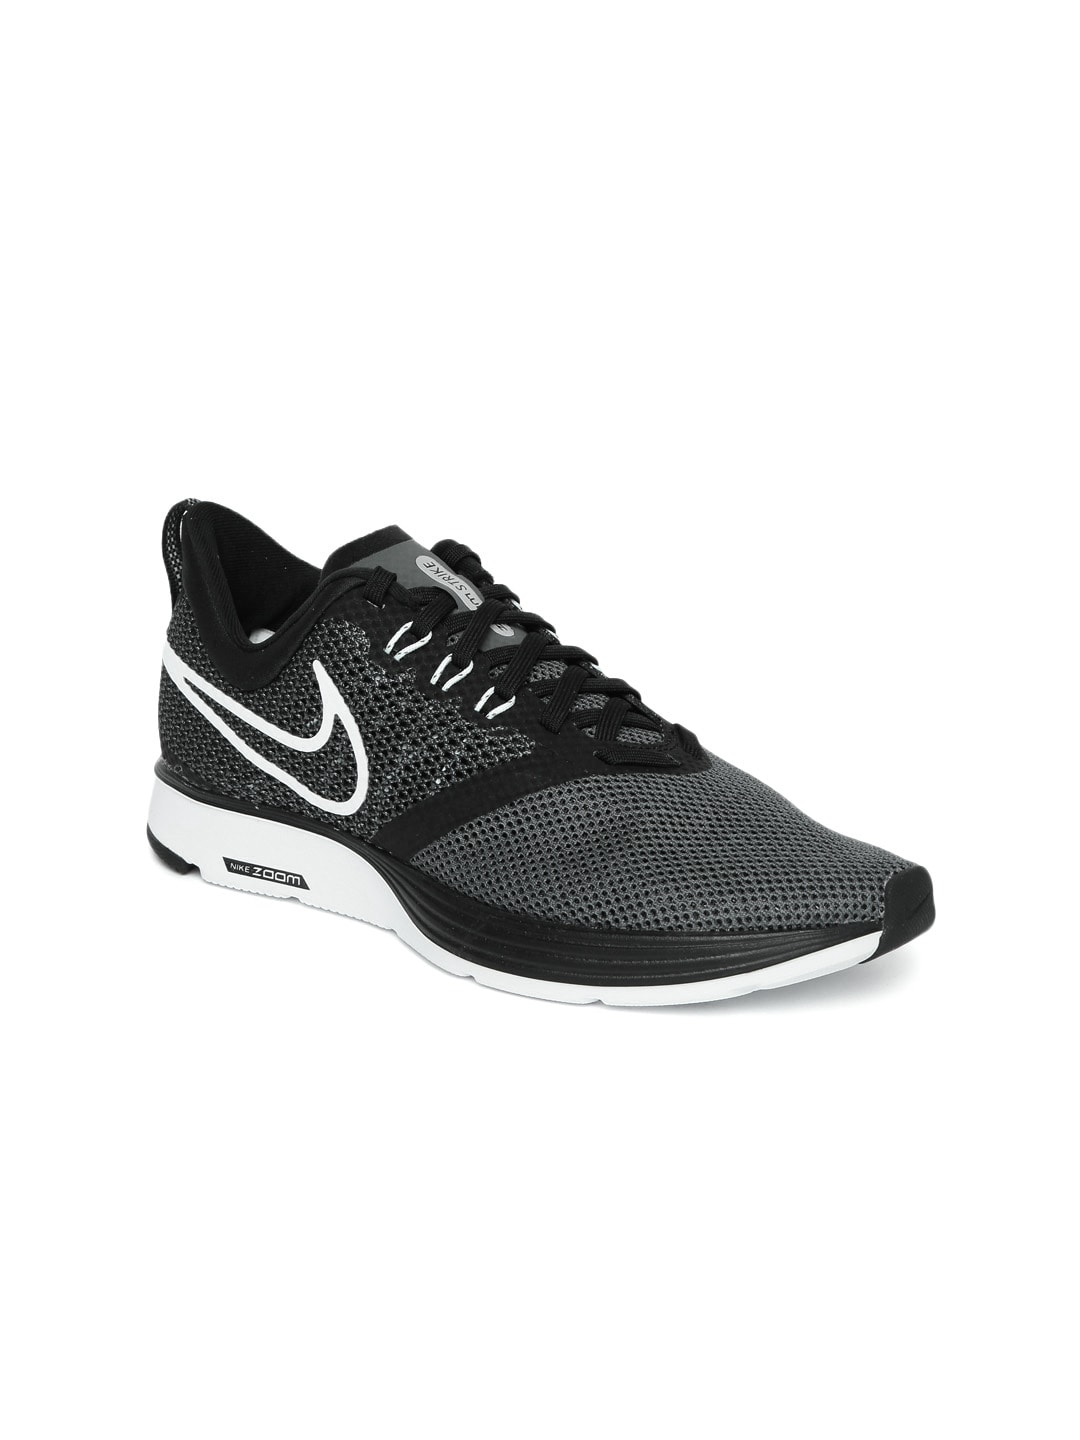 buy popular f4a95 2c04b Nike Running Shoes - Buy Nike Running Shoes Online   Myntra